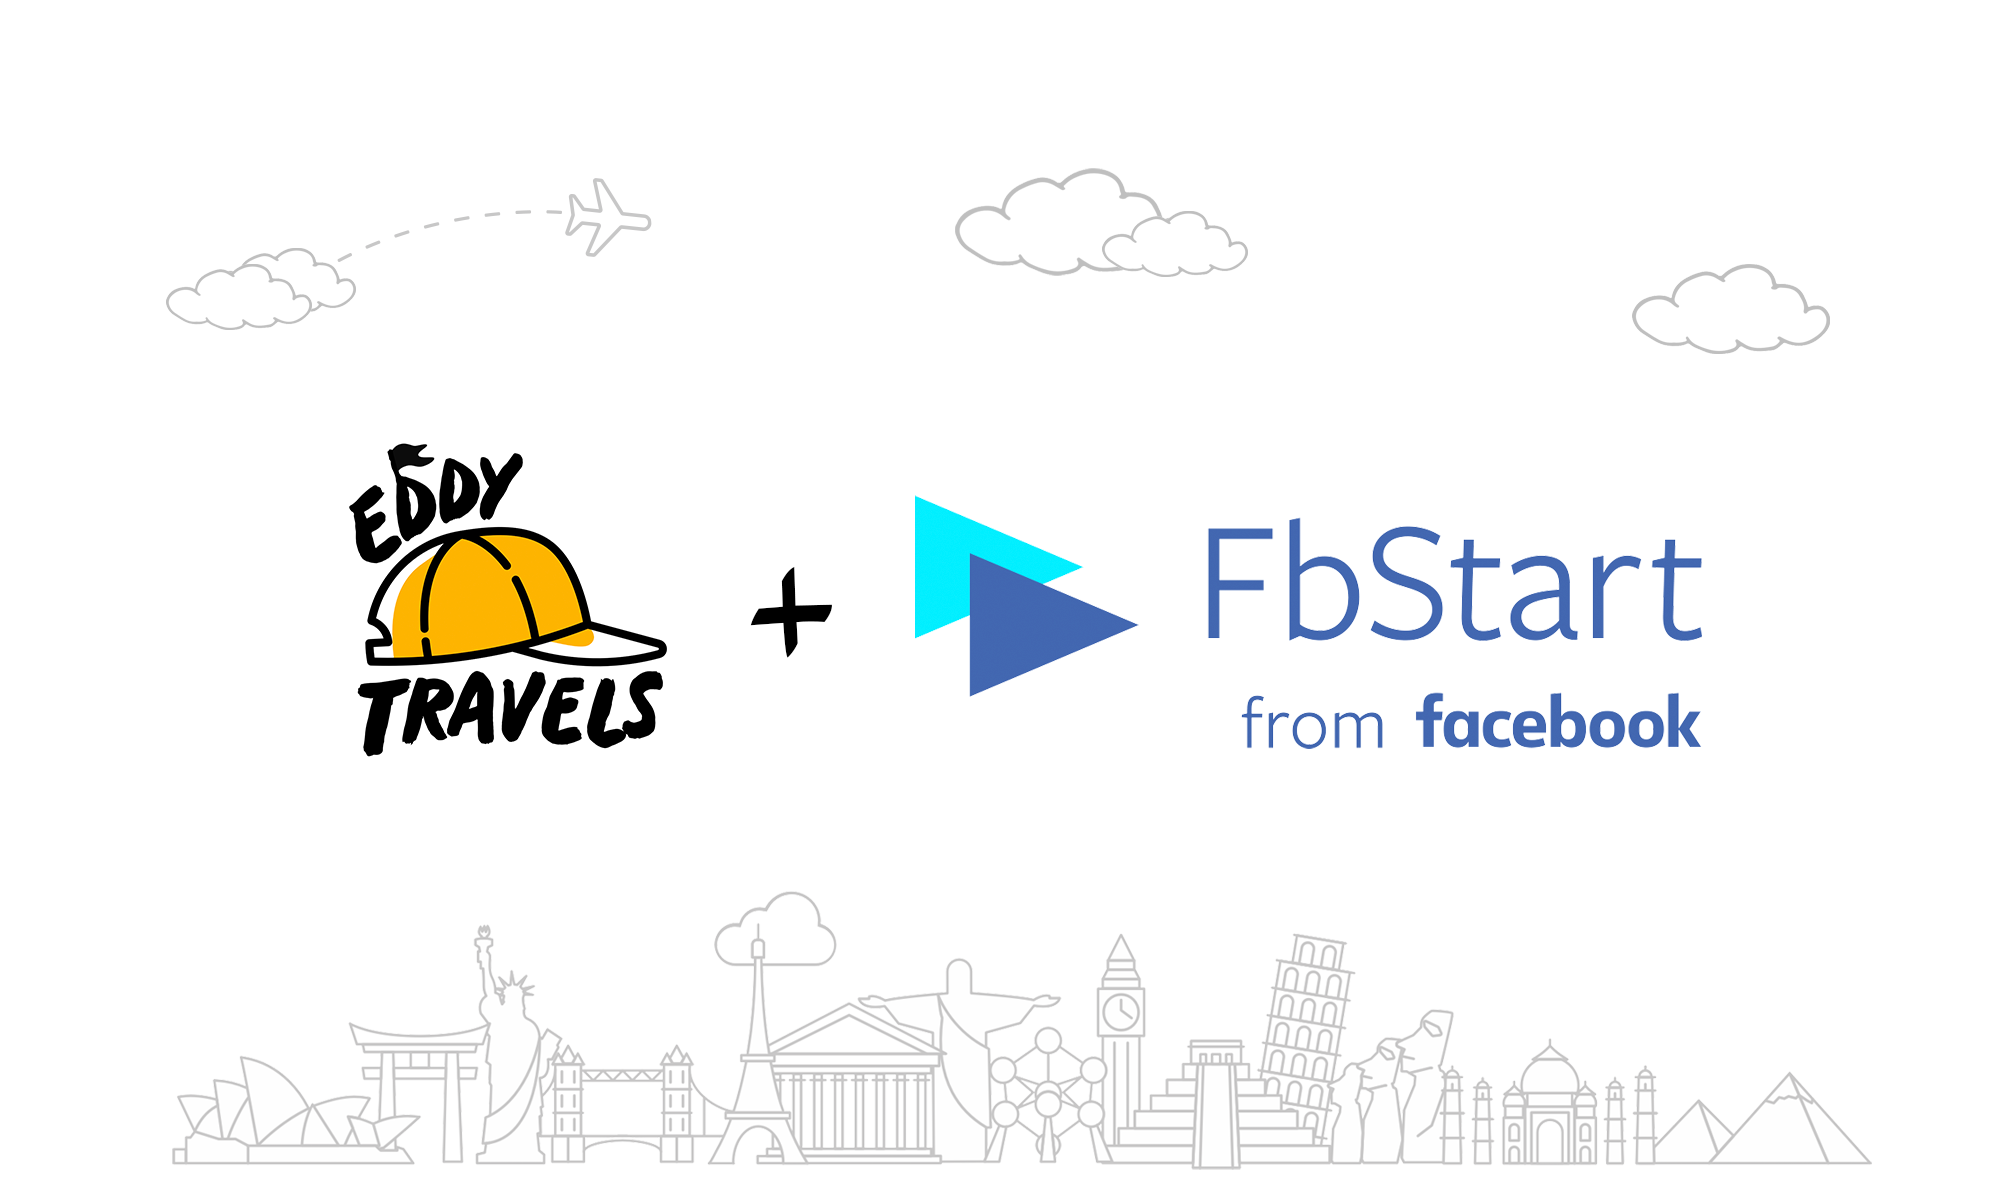 Eddy Travels is accepted to the FbStart startup program from Facebook.png